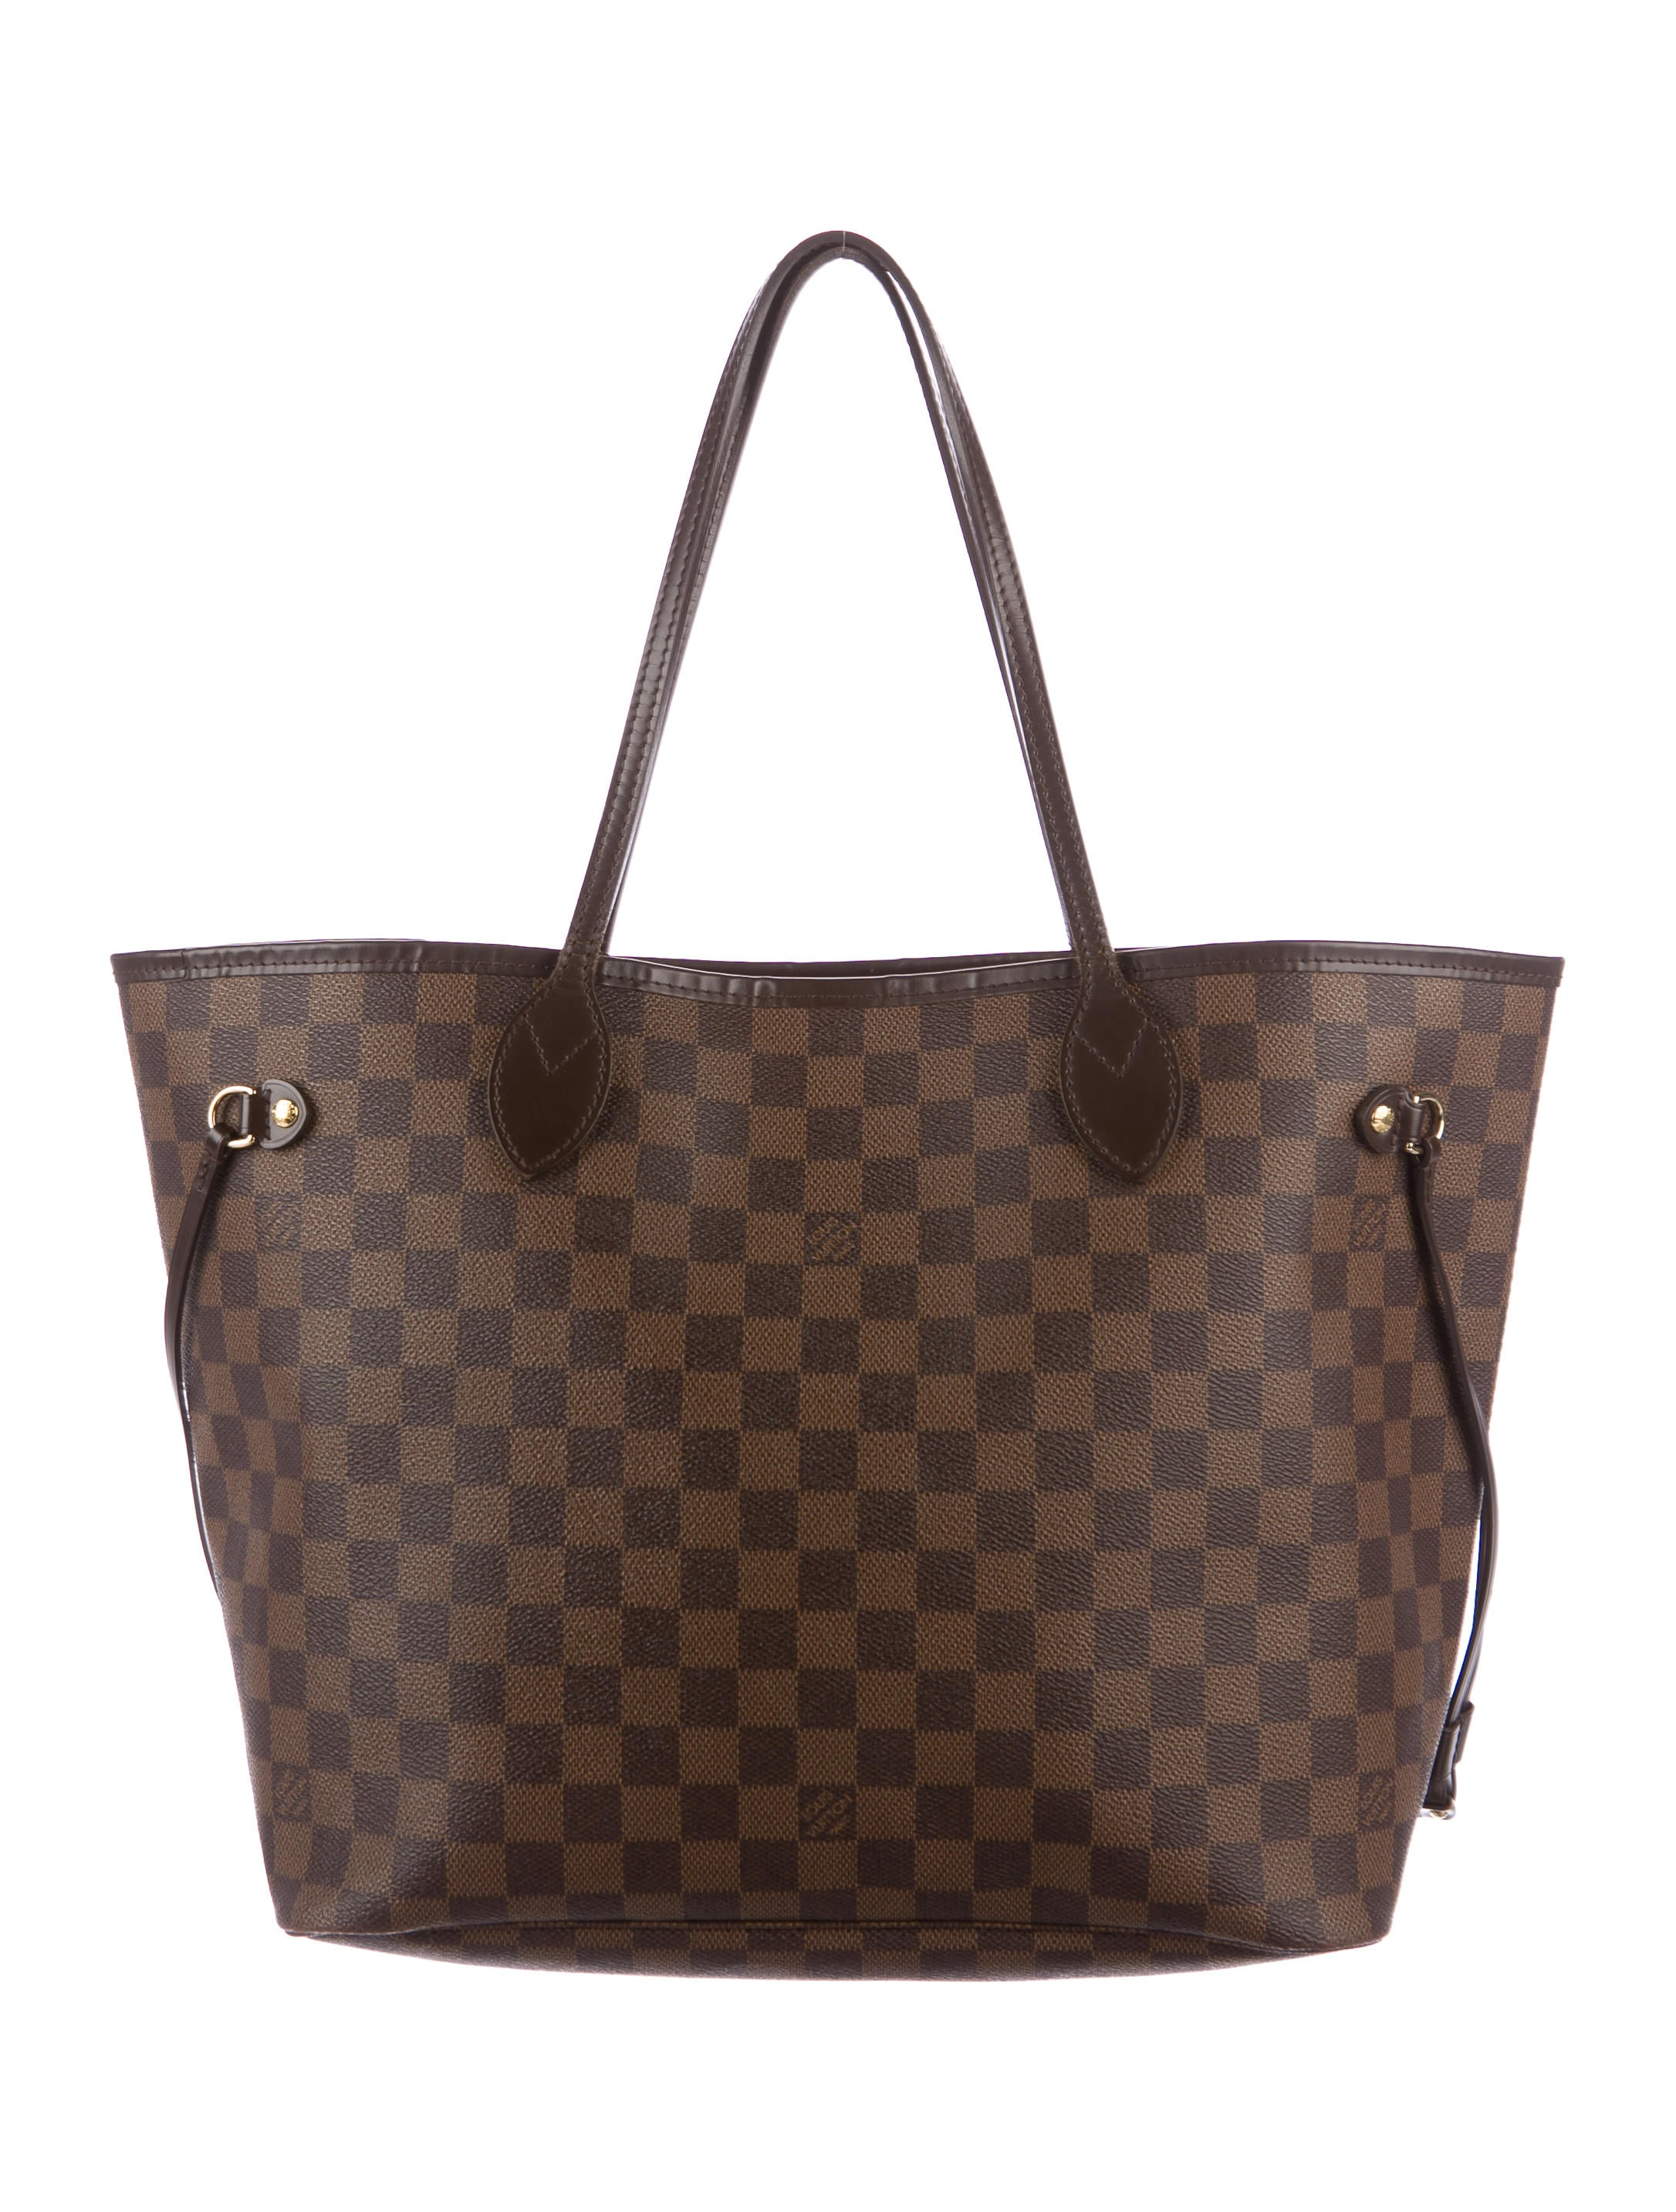 louis vuitton damier ebene neverfull mm handbags. Black Bedroom Furniture Sets. Home Design Ideas